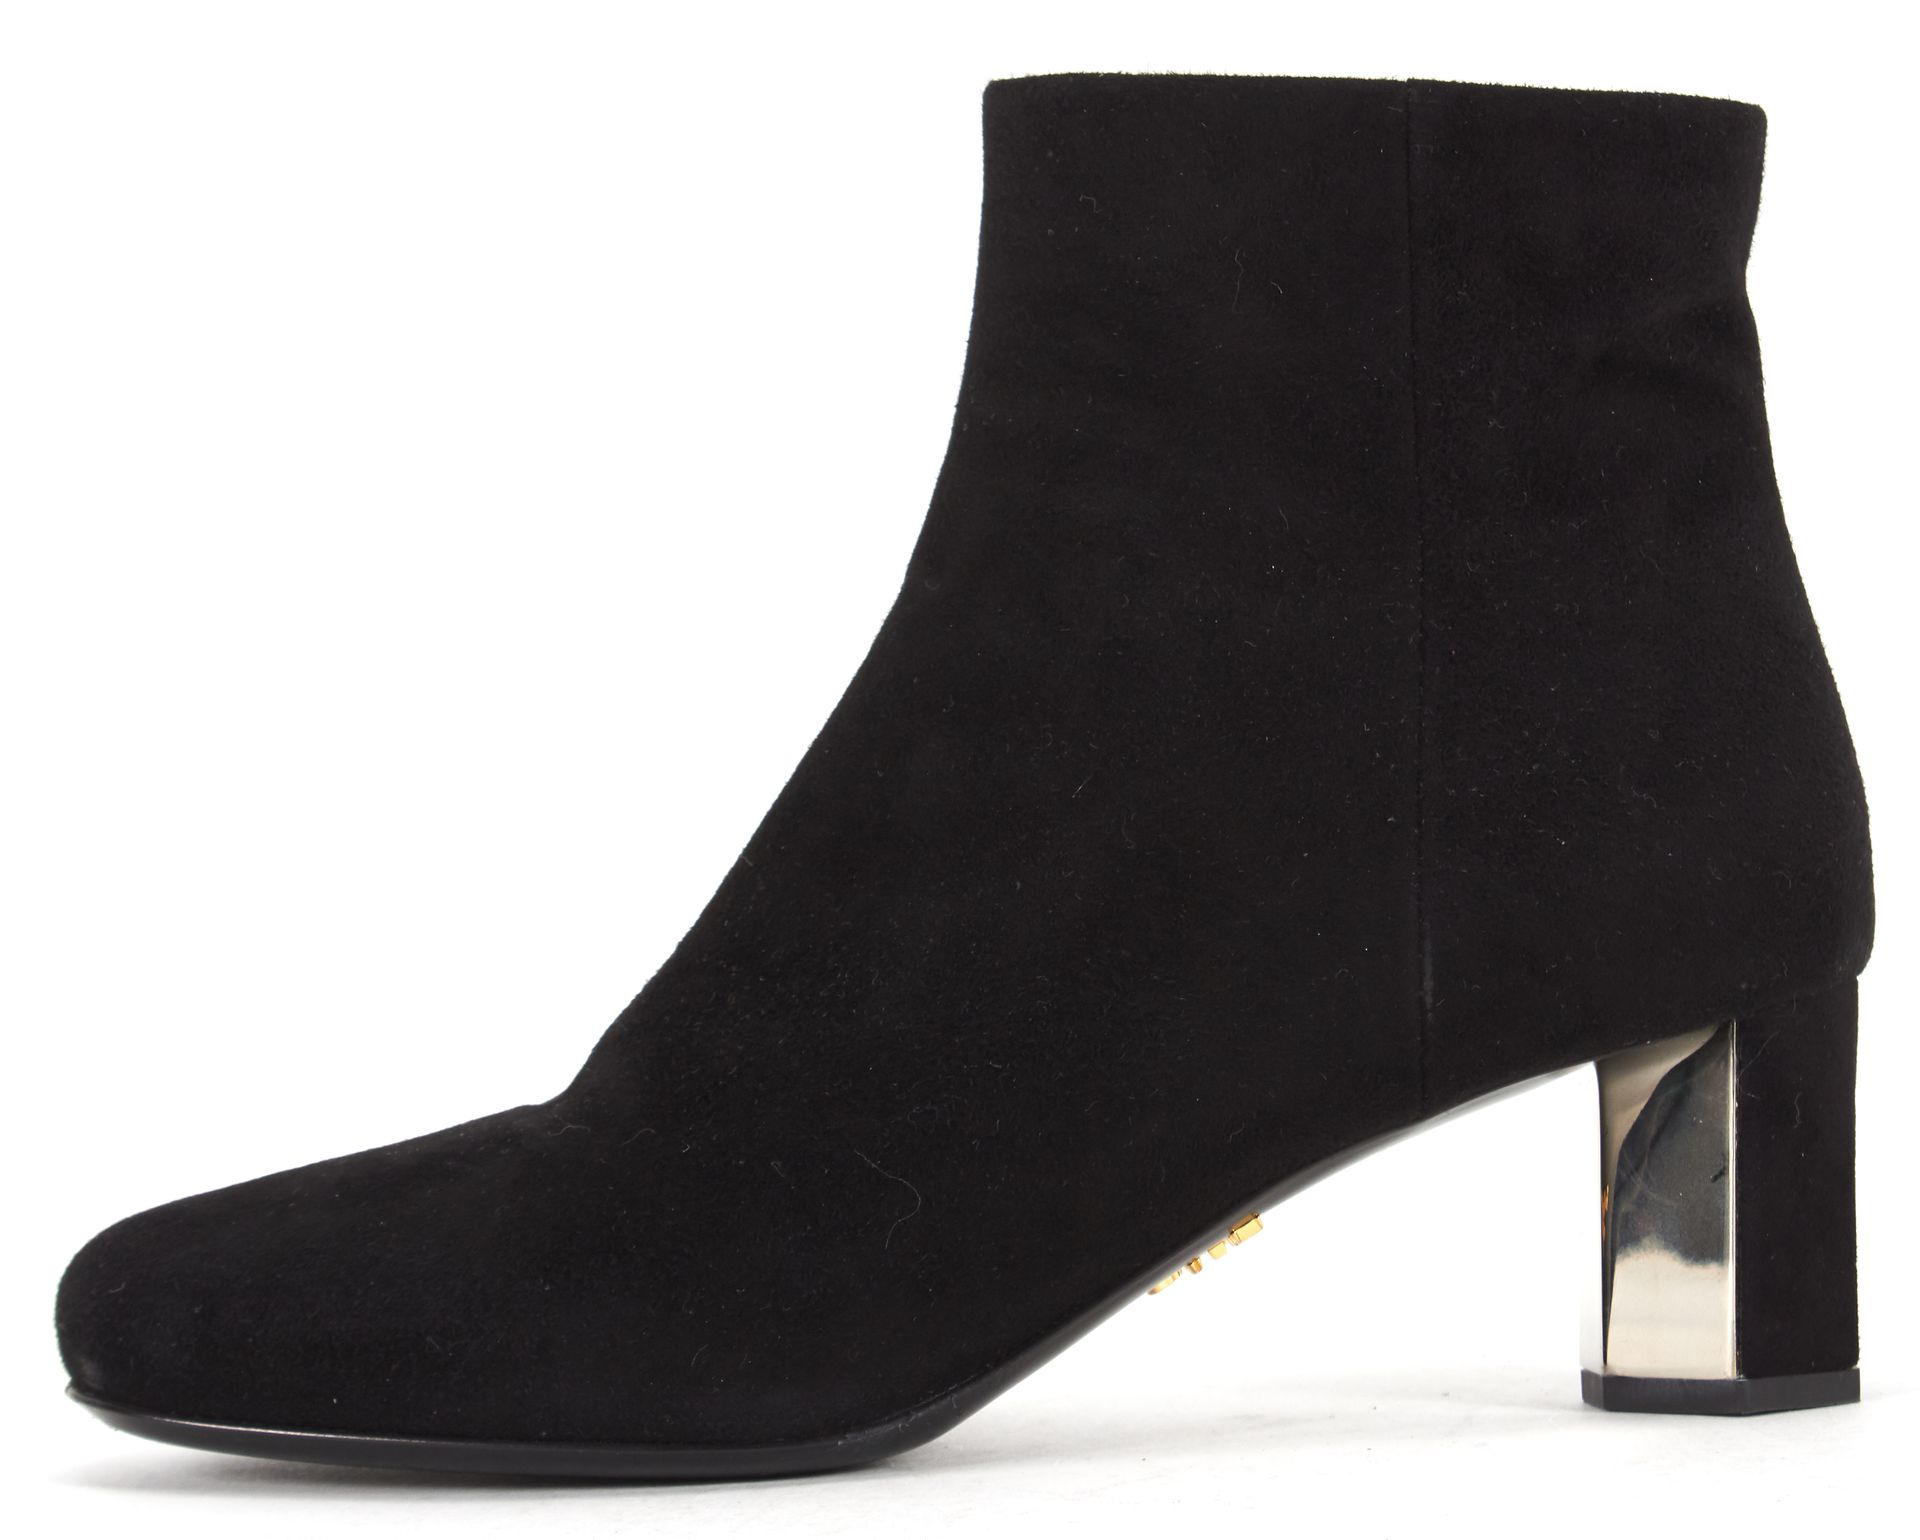 Prada Black Suede Round Toe Low Heel Ankle Boots | Material World